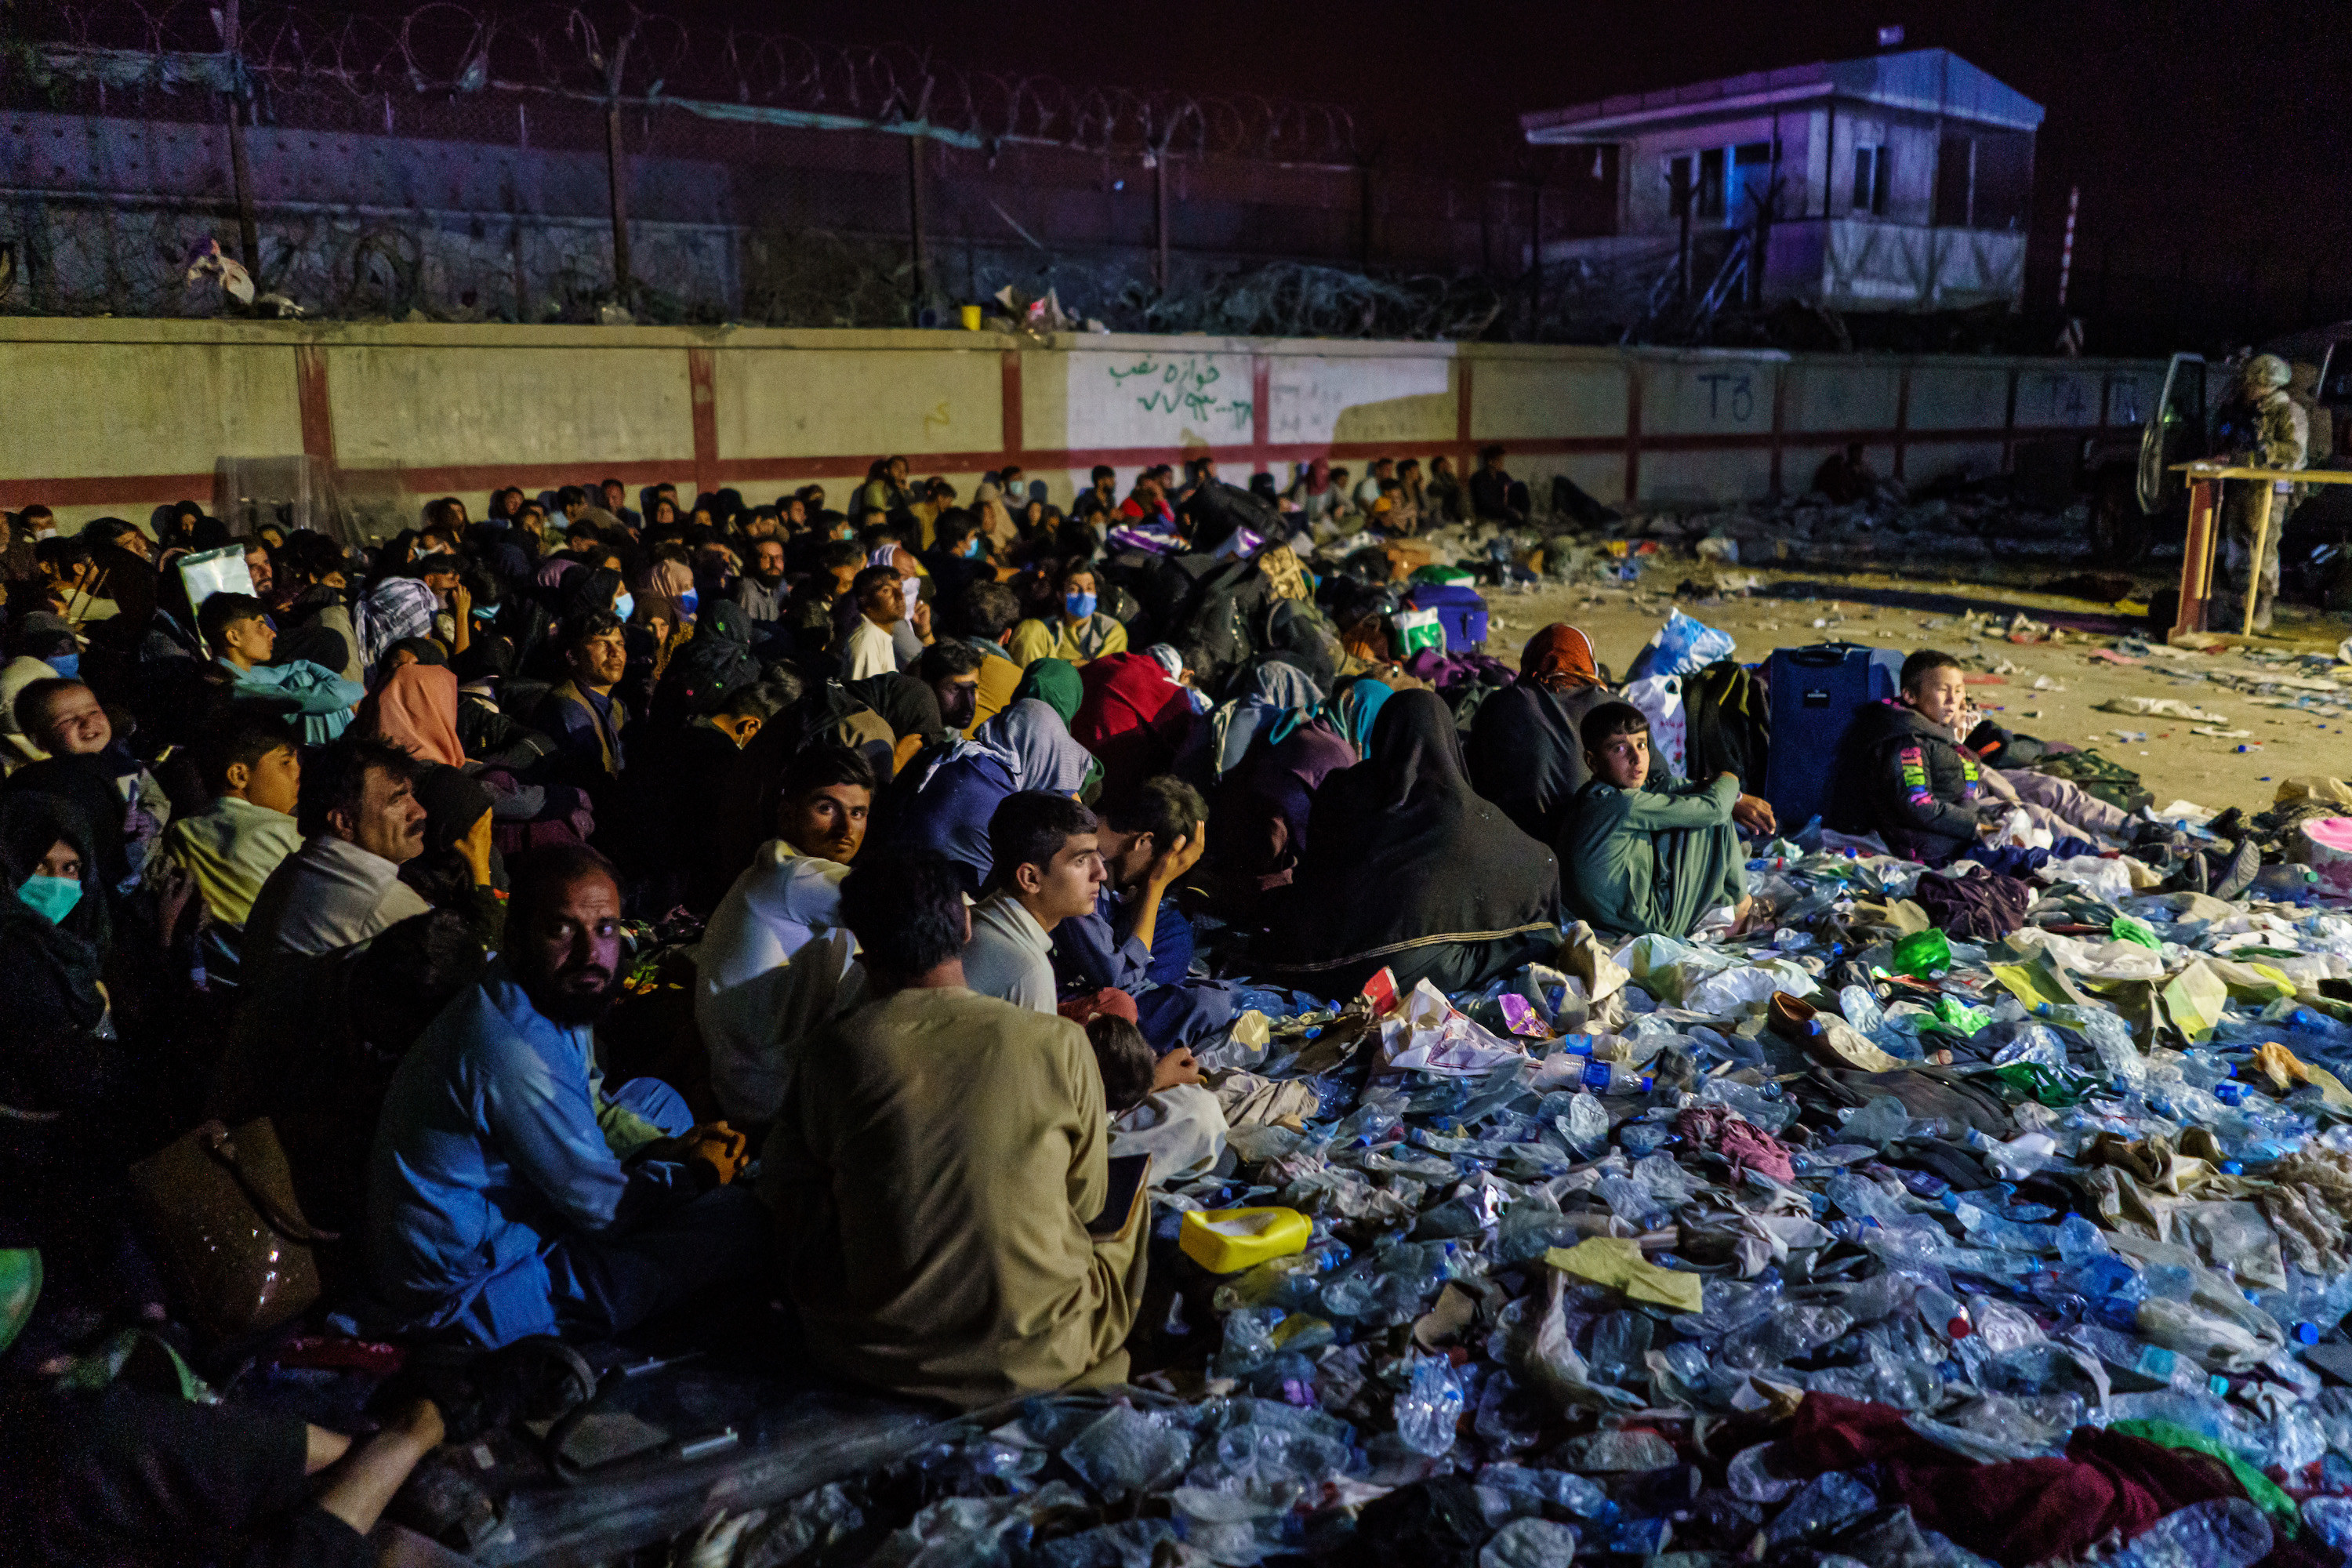 A crowd sits in the dark near armed soldiers